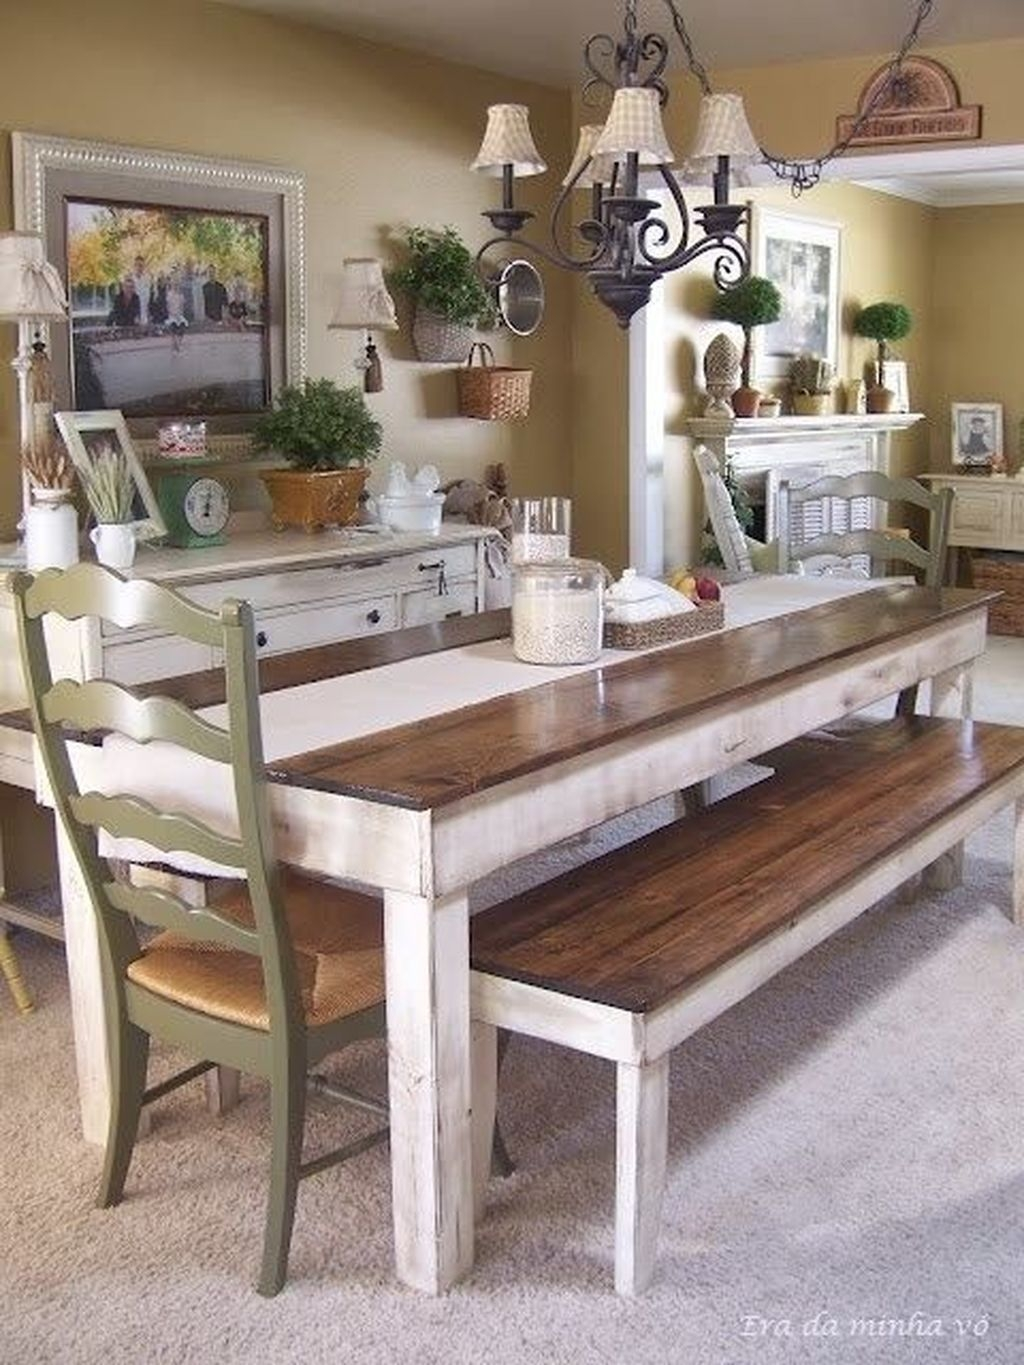 farm style kitchen table image collections table decoration ideas rh watchthetrailer info farm style kitchen table plans farm style kitchen table plans that are free